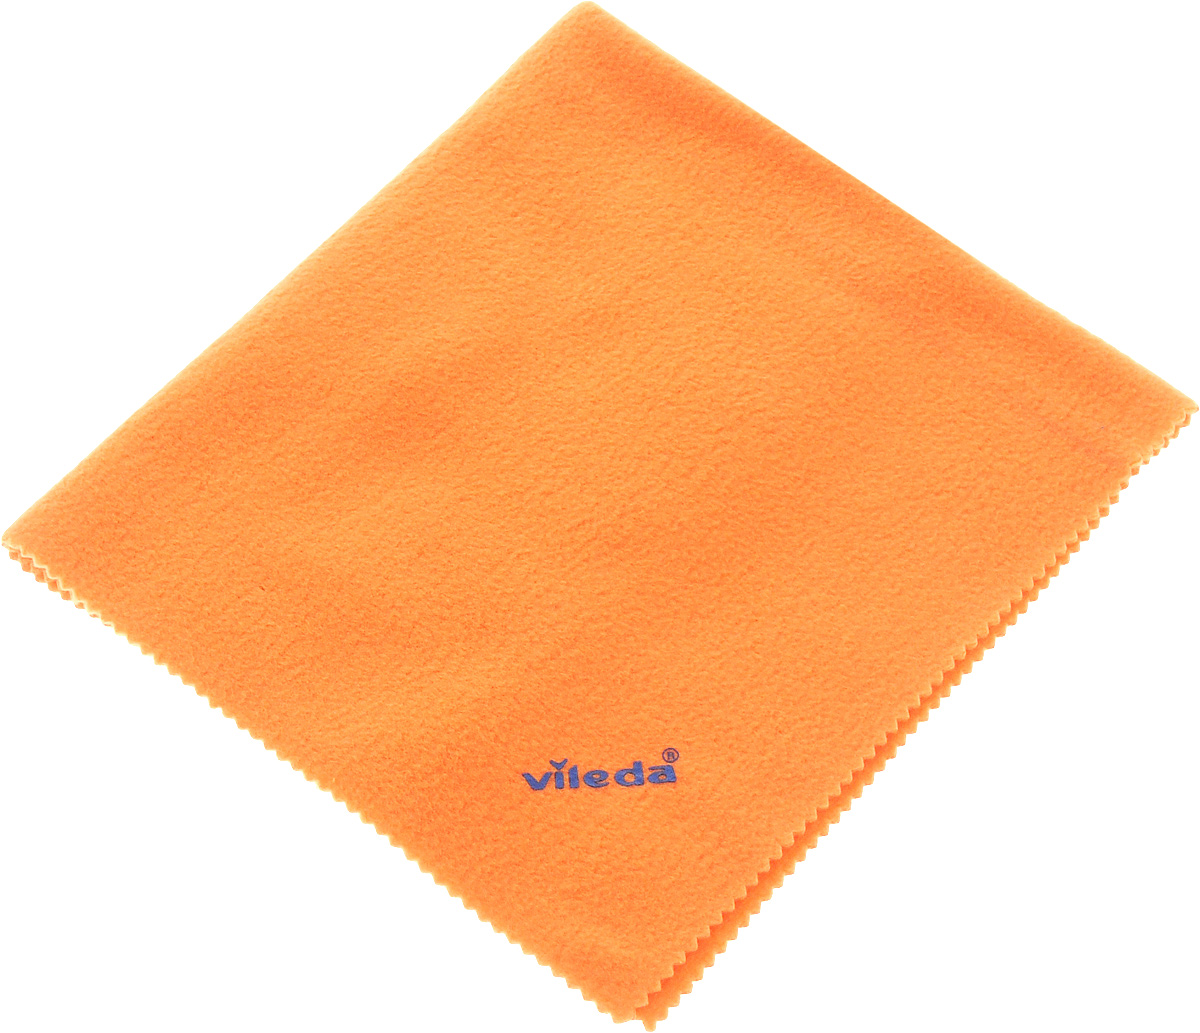 Салфетка для уборки Vileda Soft Dust Cloth, 40 х 30 см салфетка vileda актифайбр